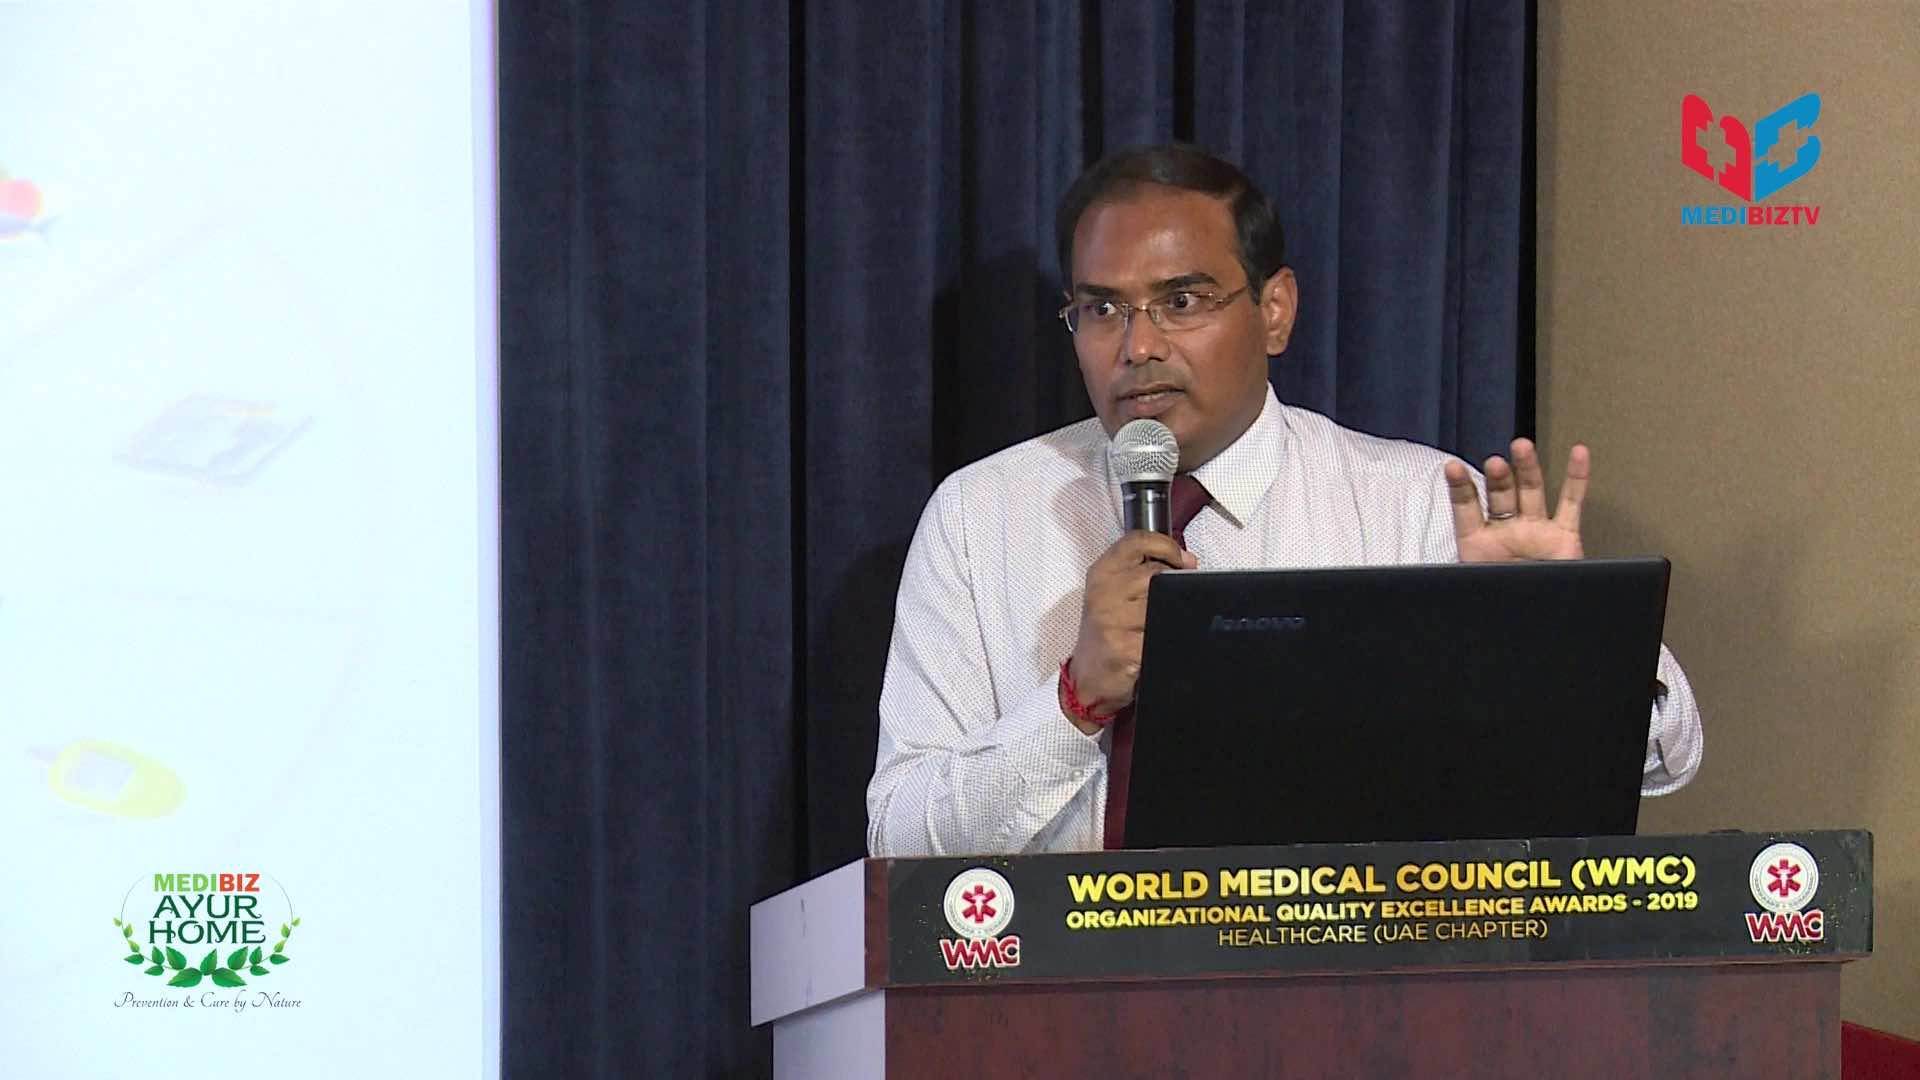 Medical Awareness Presentation 4 - Healthy Heart - Part 2